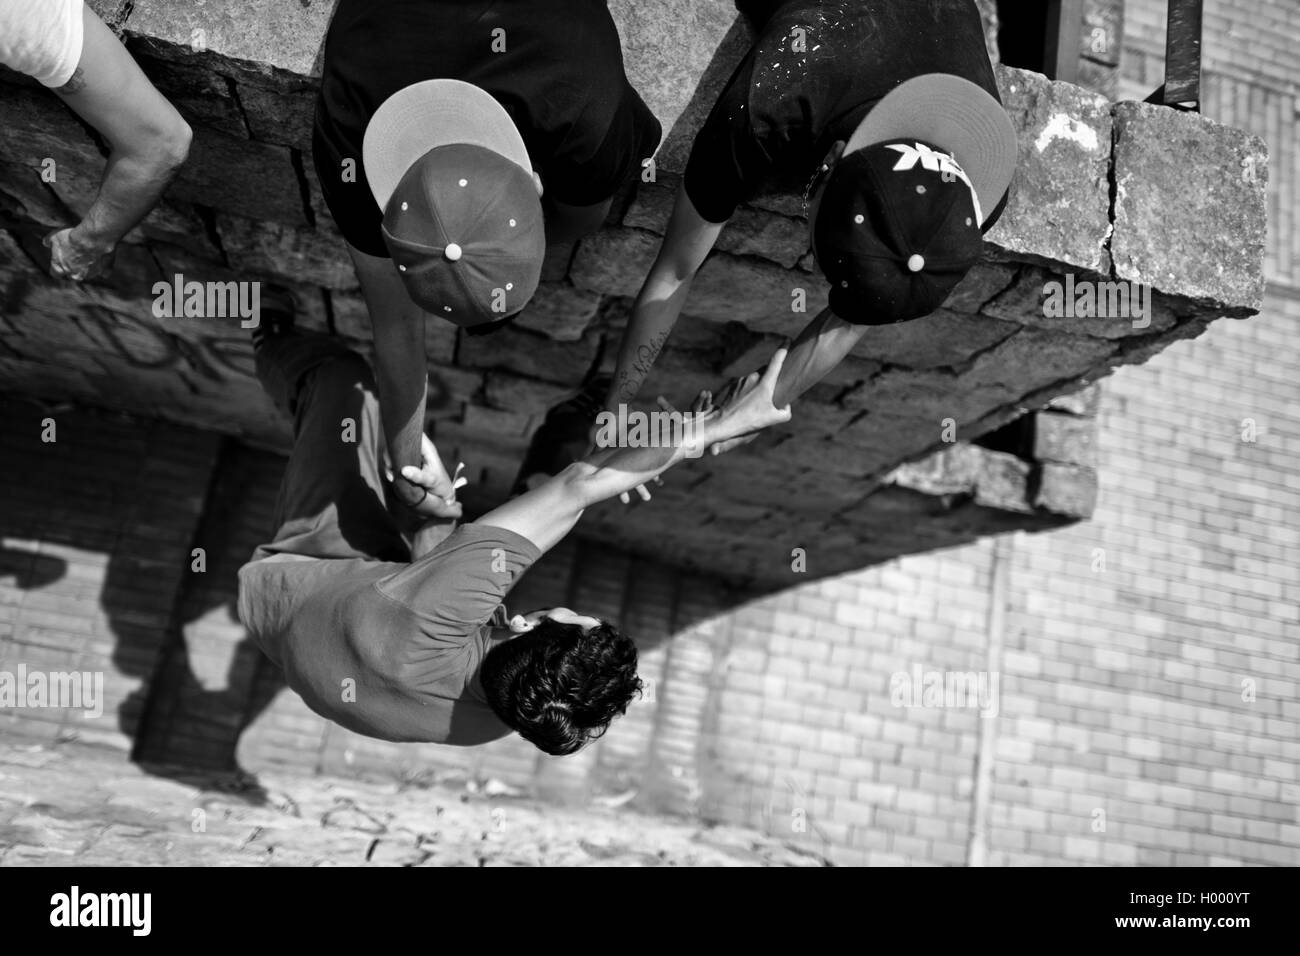 A Colombian parkour runner, hung on his mates' hands, climbs on the wall during a training session in Bogotá, - Stock Image